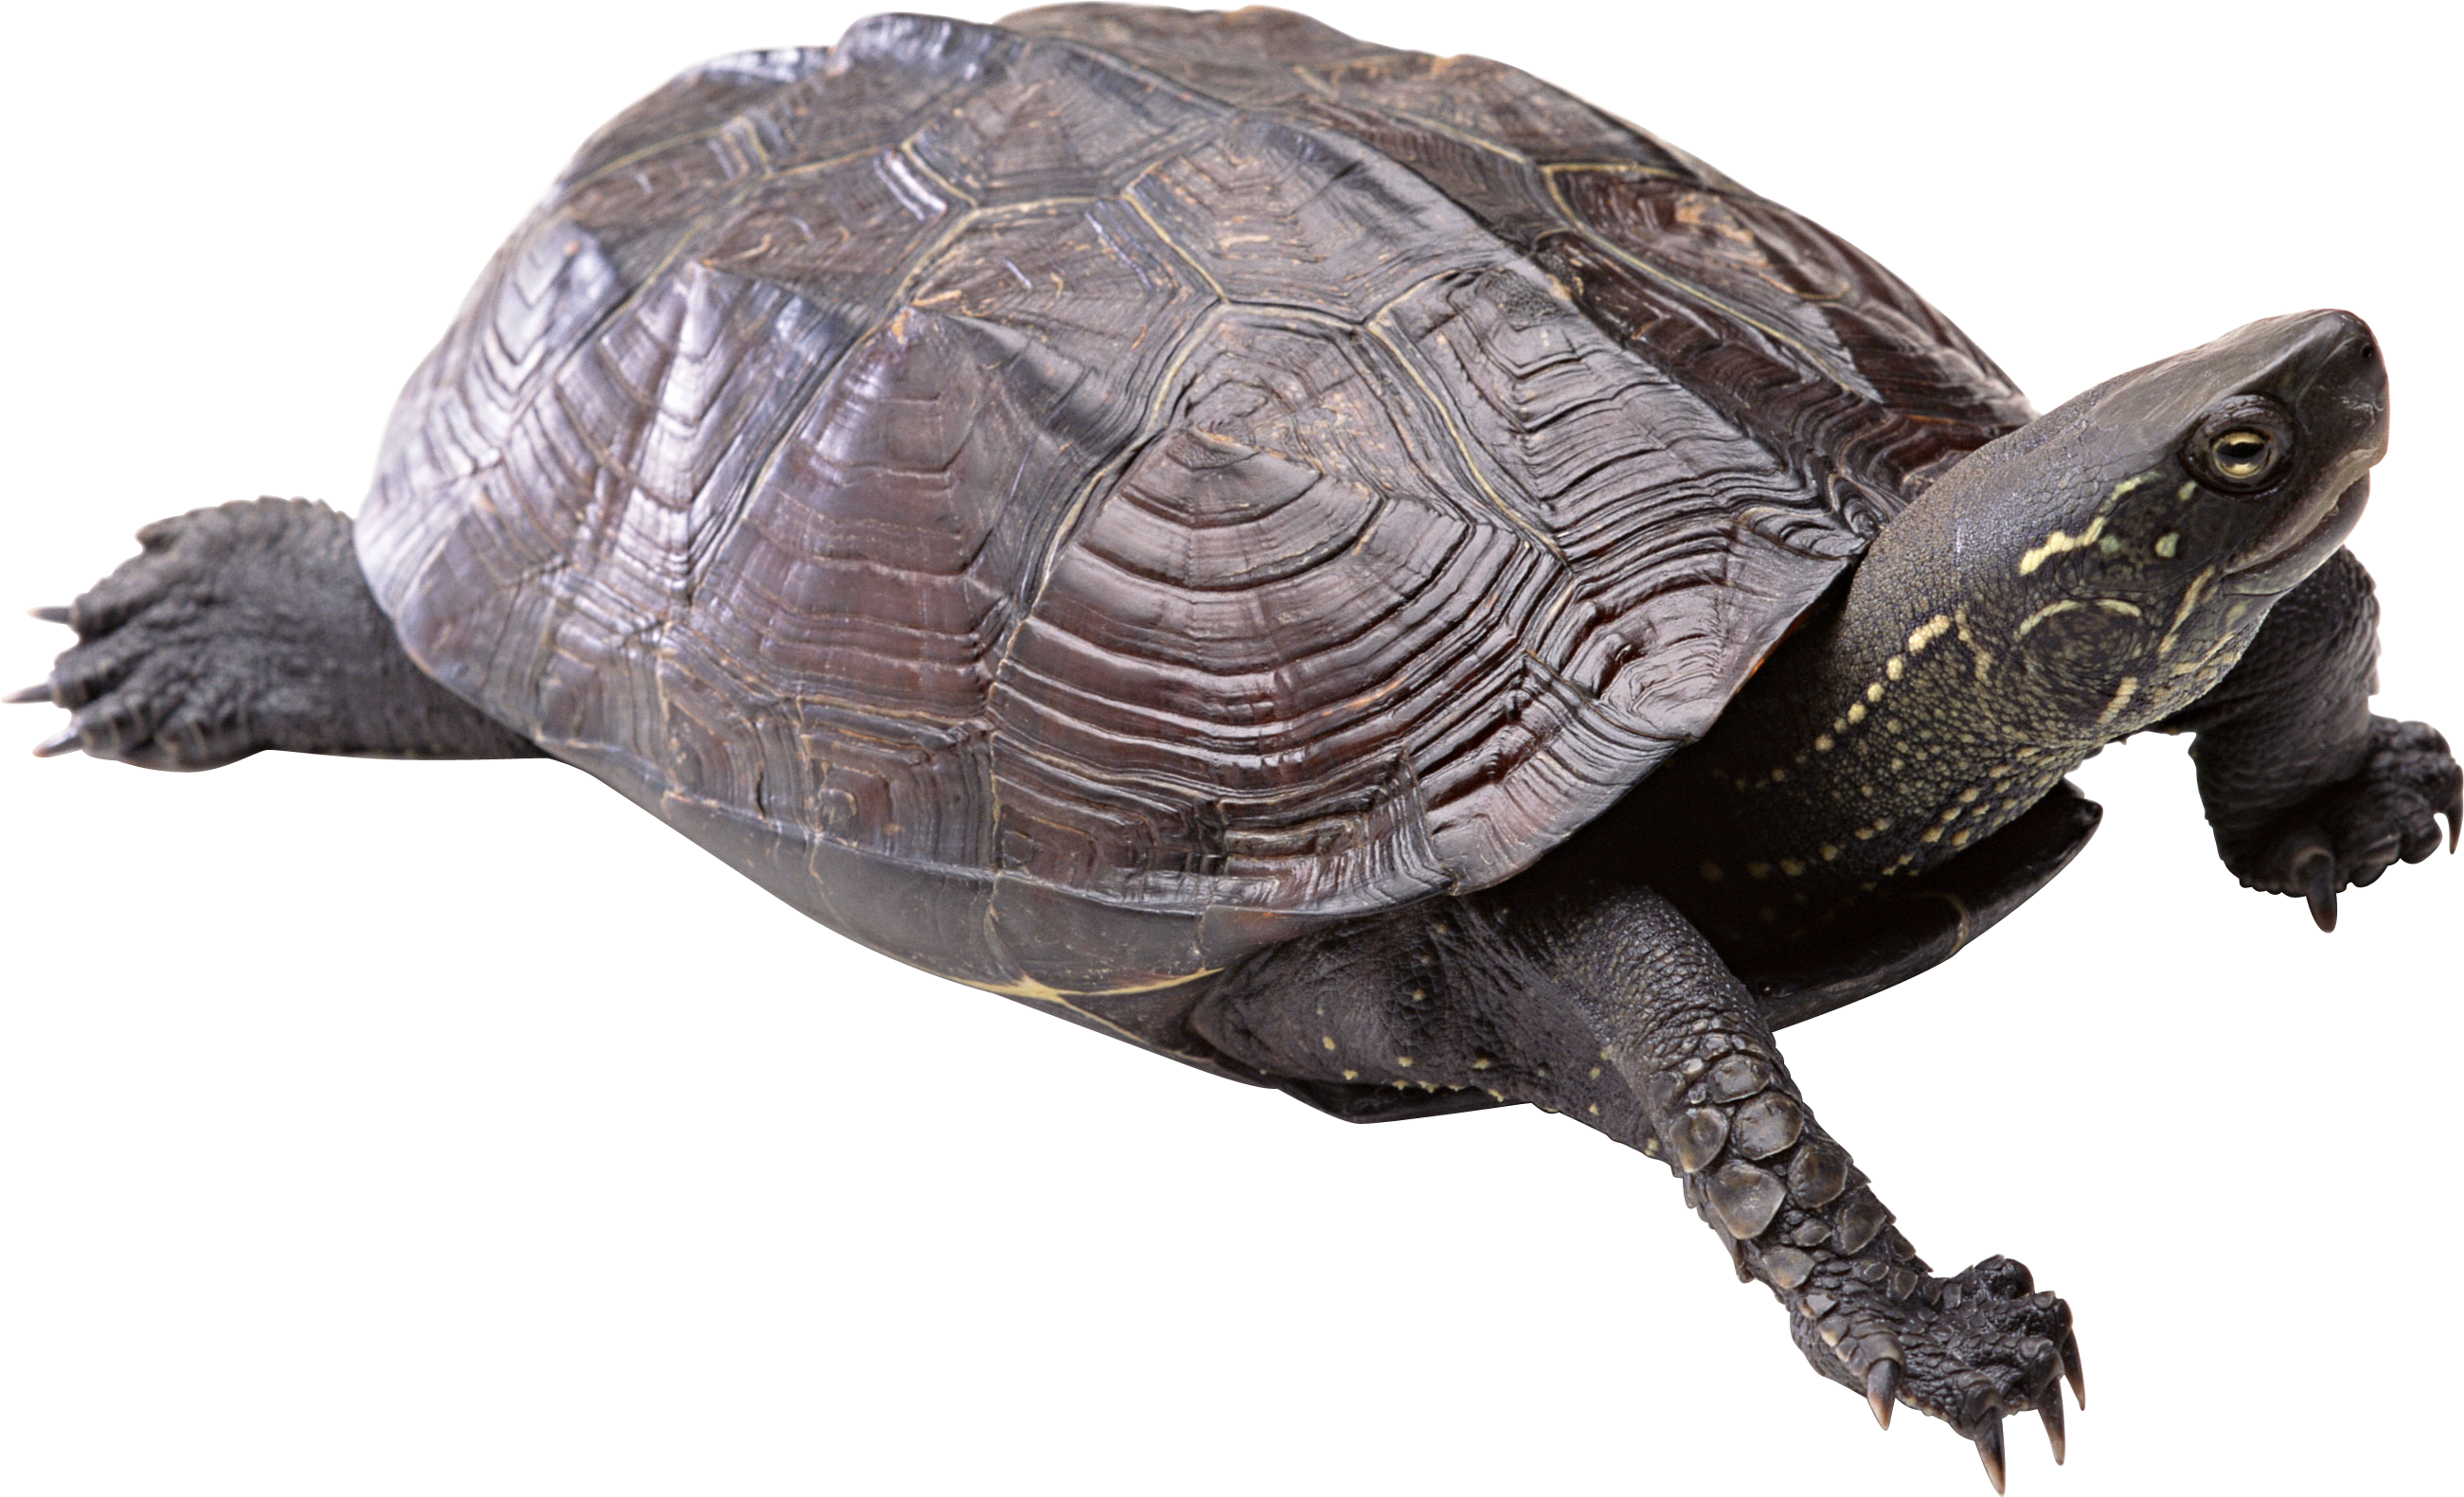 Png images free download. Lake clipart turtle